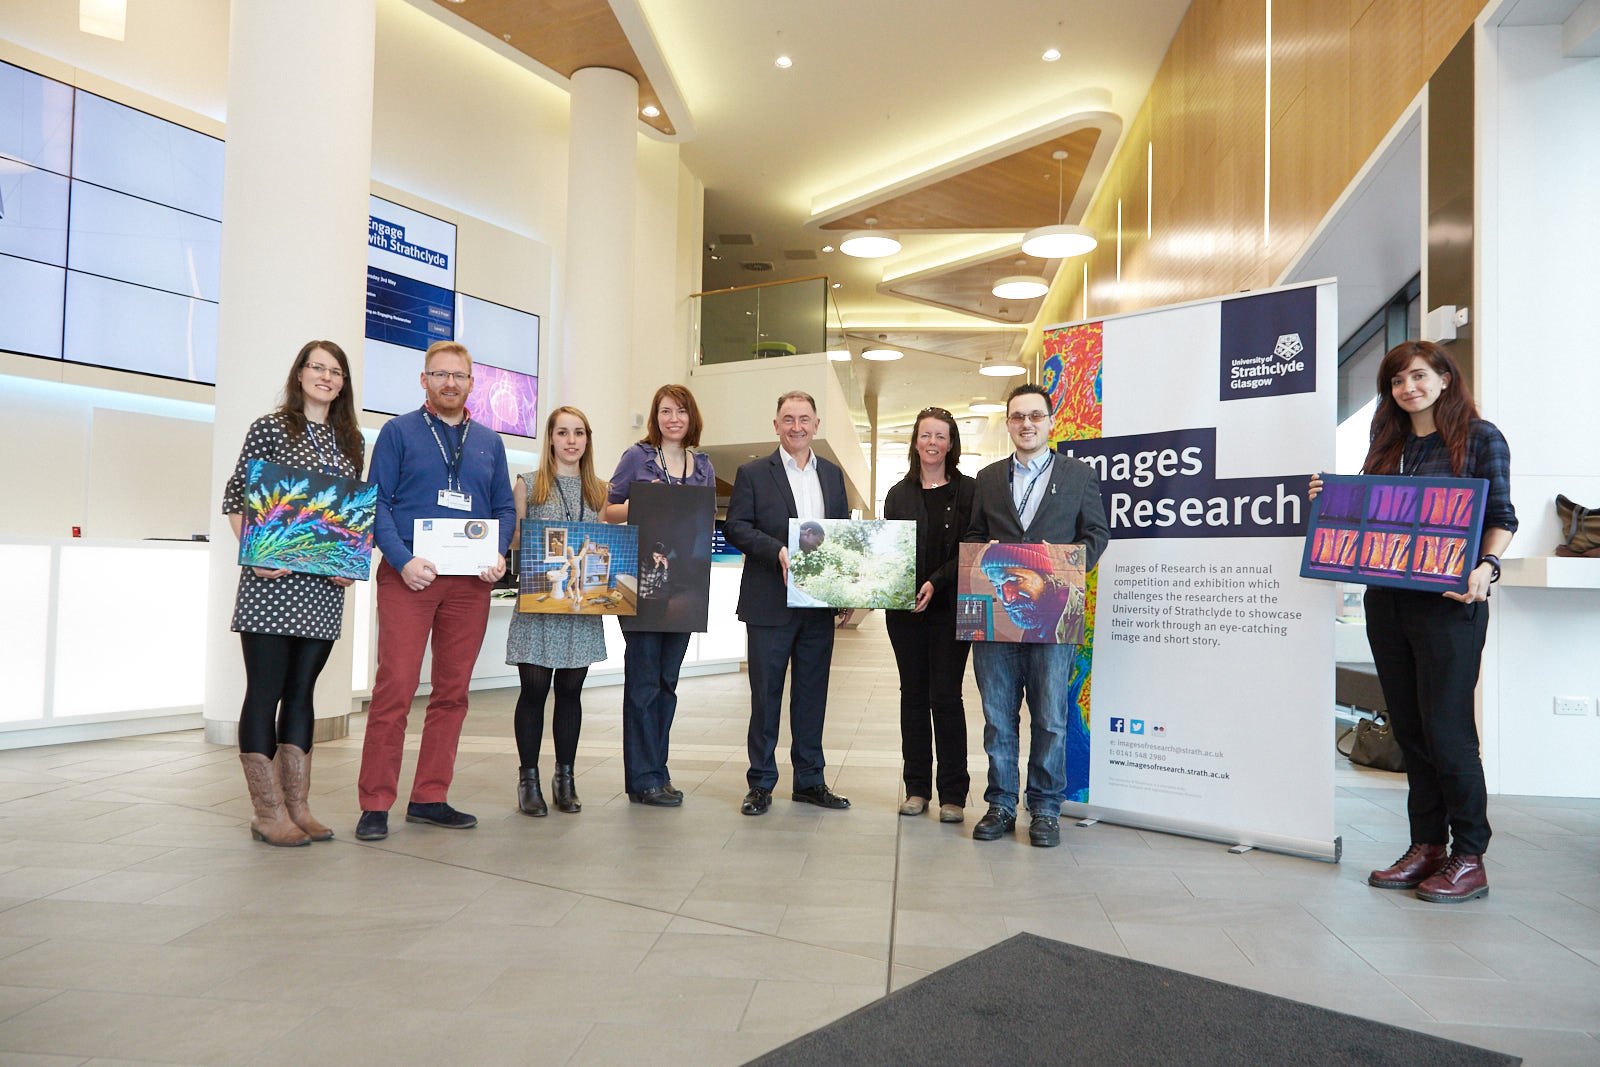 Images of Research category winners